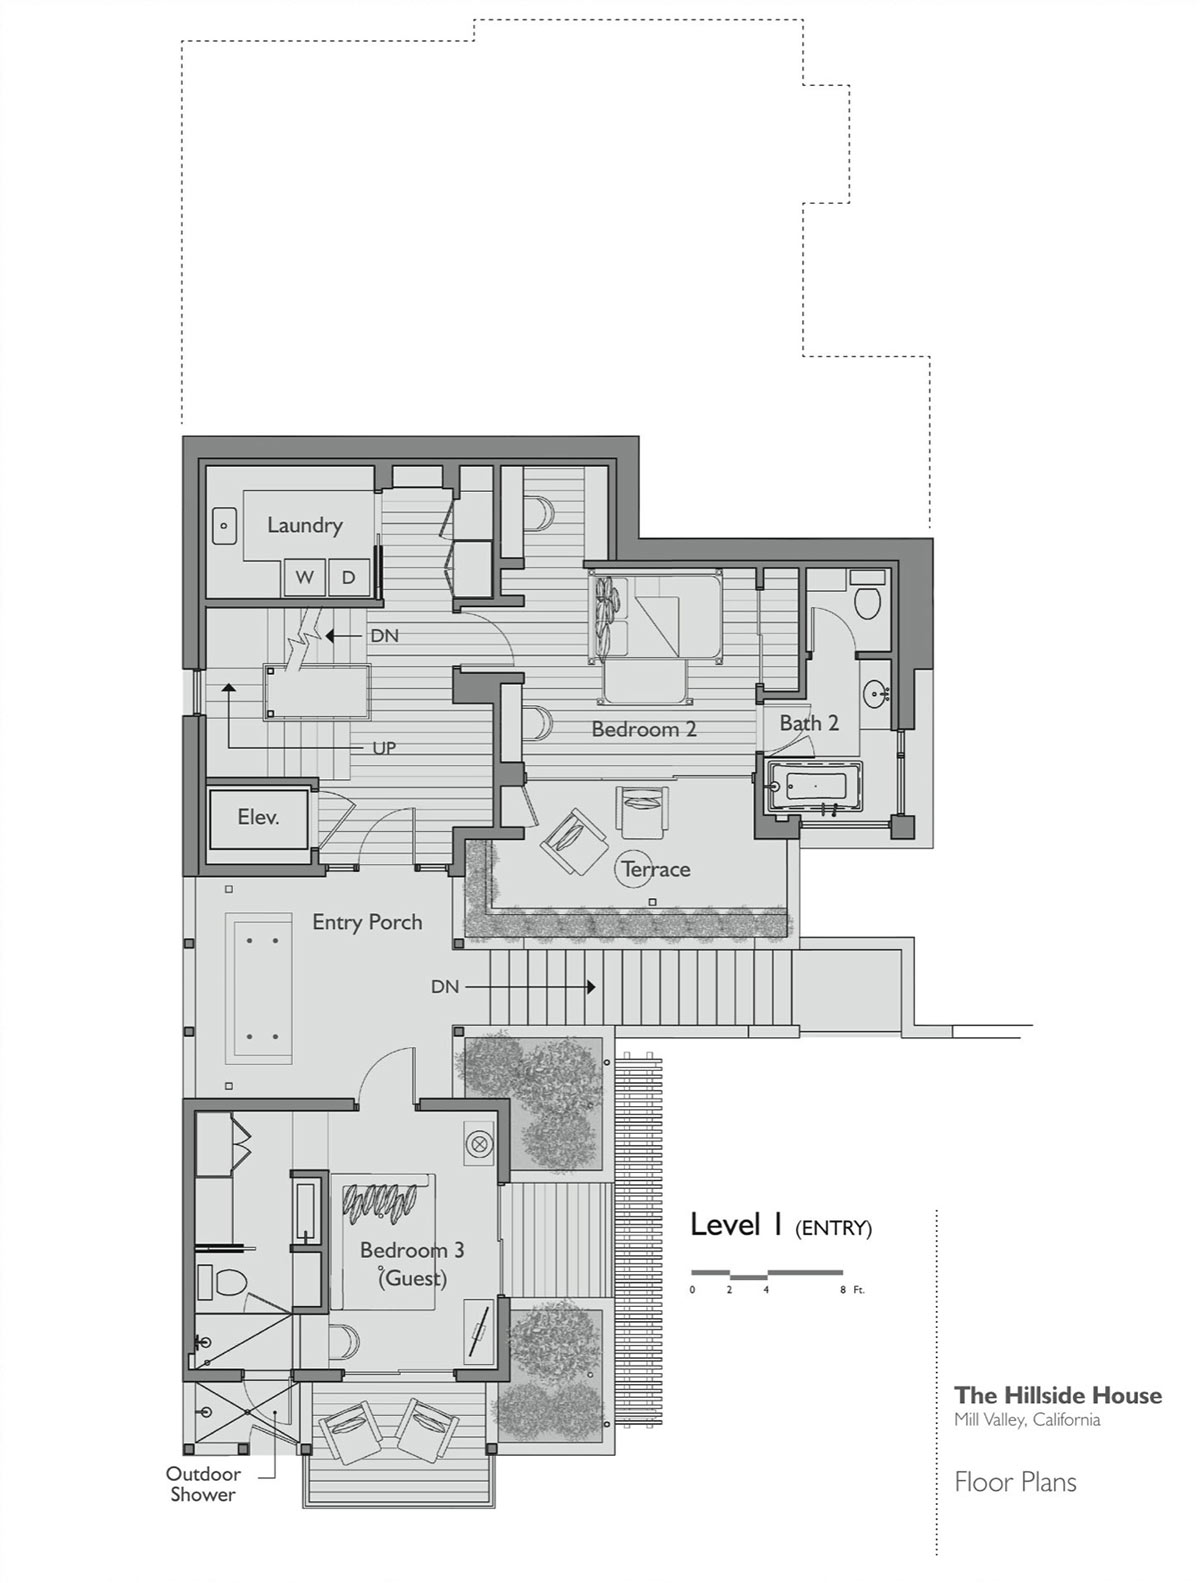 Floor plan level 1 hillside house california by sb for House plans by architects